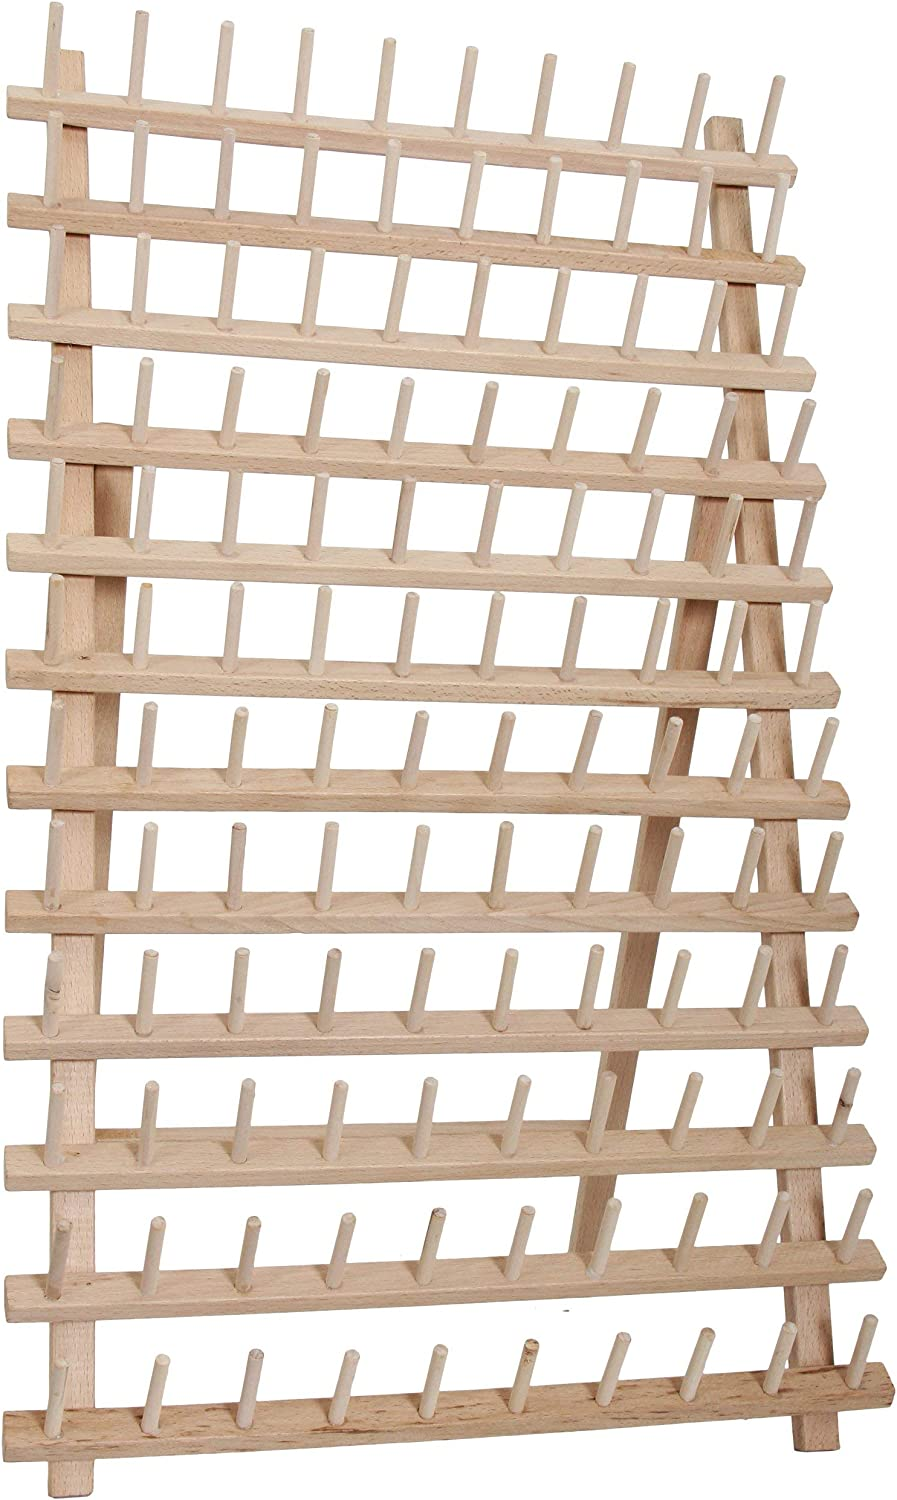 Threadart 120 Spool Cone Wood Thread Rack   Made of Hardwood, Sturdy, Freestanding or Wall Mount   Fits Mini-King Size Cones & Most Spools   For Sewing, Embroidery, Quilting, & Specialty Thread Storage